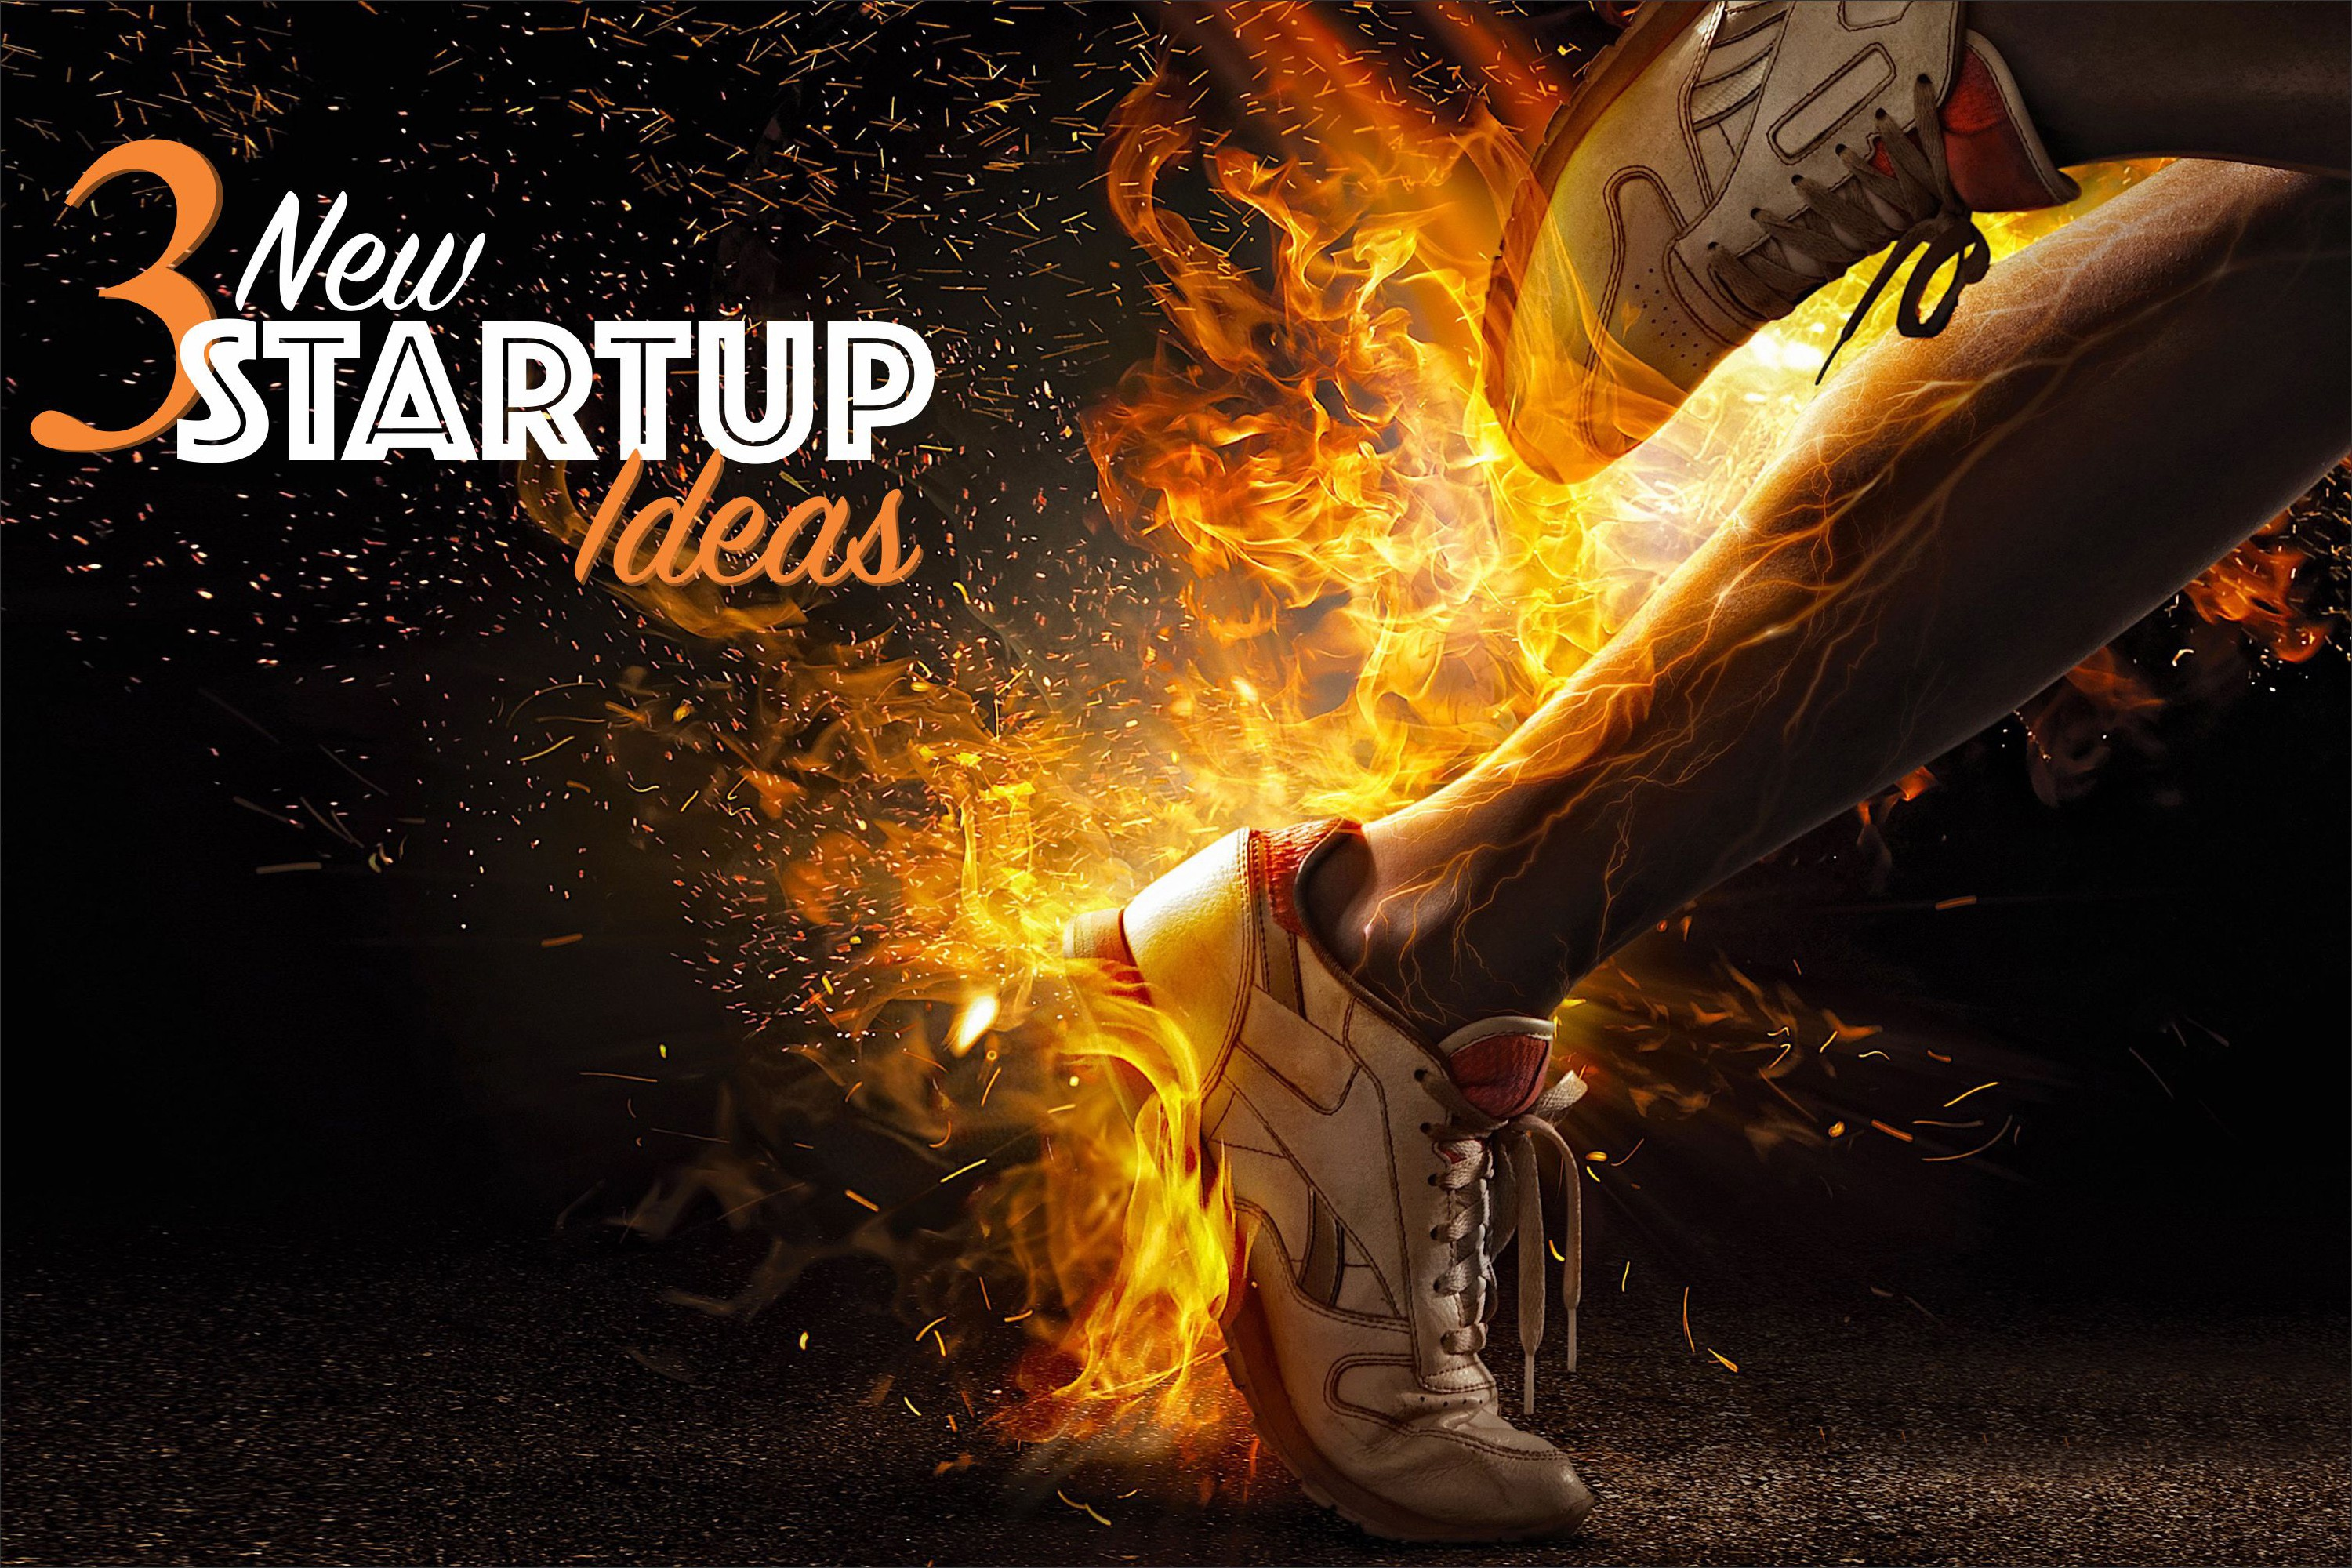 Startup ideas in India, STFUtheBook, Startups, Book on Startups